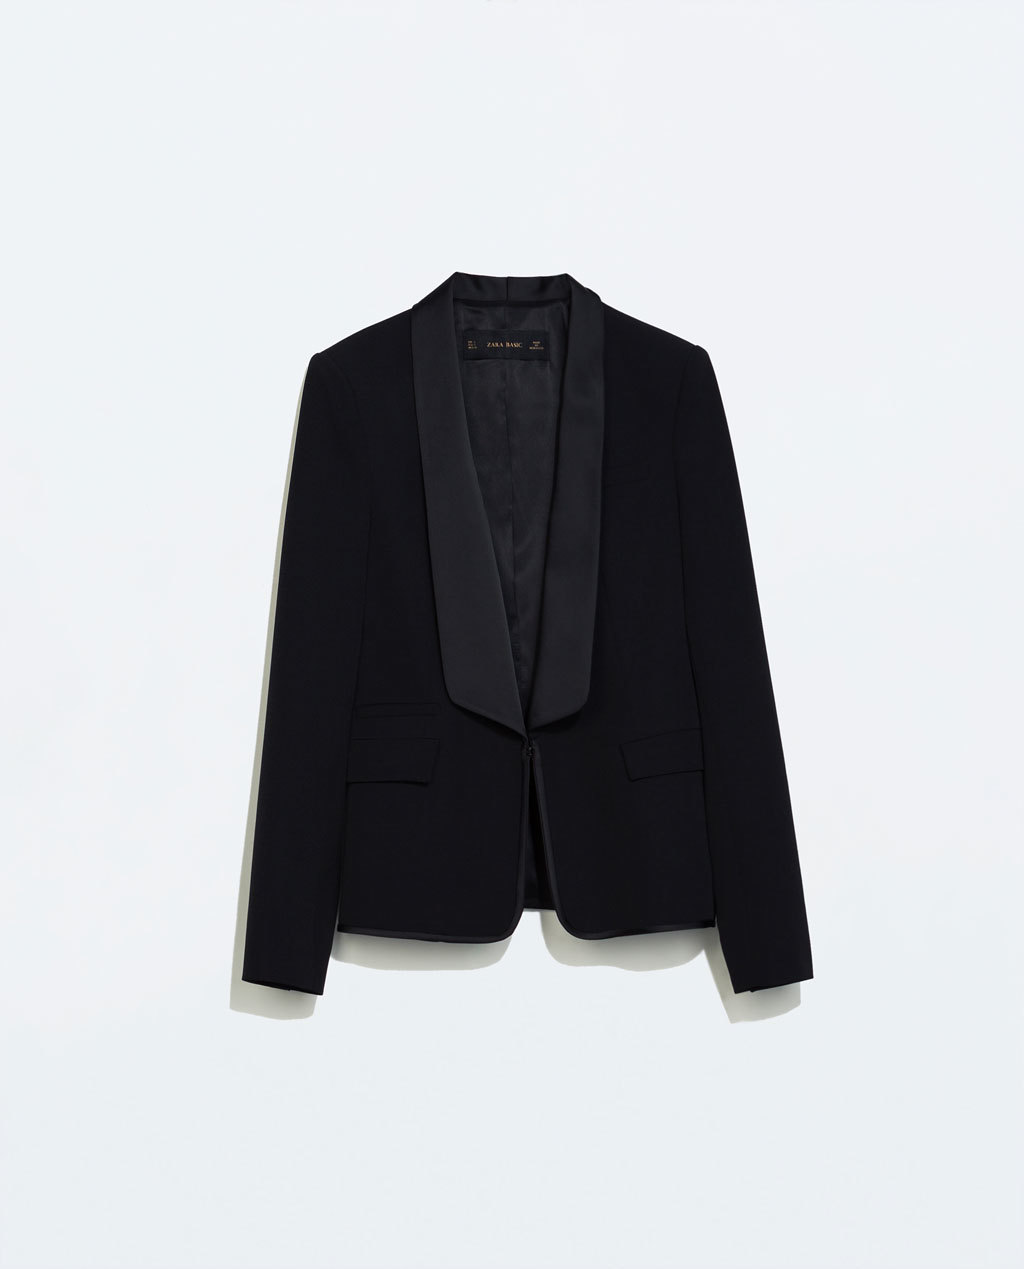 Blazer With Combined Lapel - pattern: plain; style: single breasted blazer; collar: shawl/waterfall; predominant colour: black; occasions: evening, work, occasion; length: standard; fit: tailored/fitted; fibres: polyester/polyamide - 100%; sleeve length: long sleeve; sleeve style: standard; collar break: low/open; pattern type: fabric; texture group: woven light midweight; season: a/w 2014; wardrobe: investment